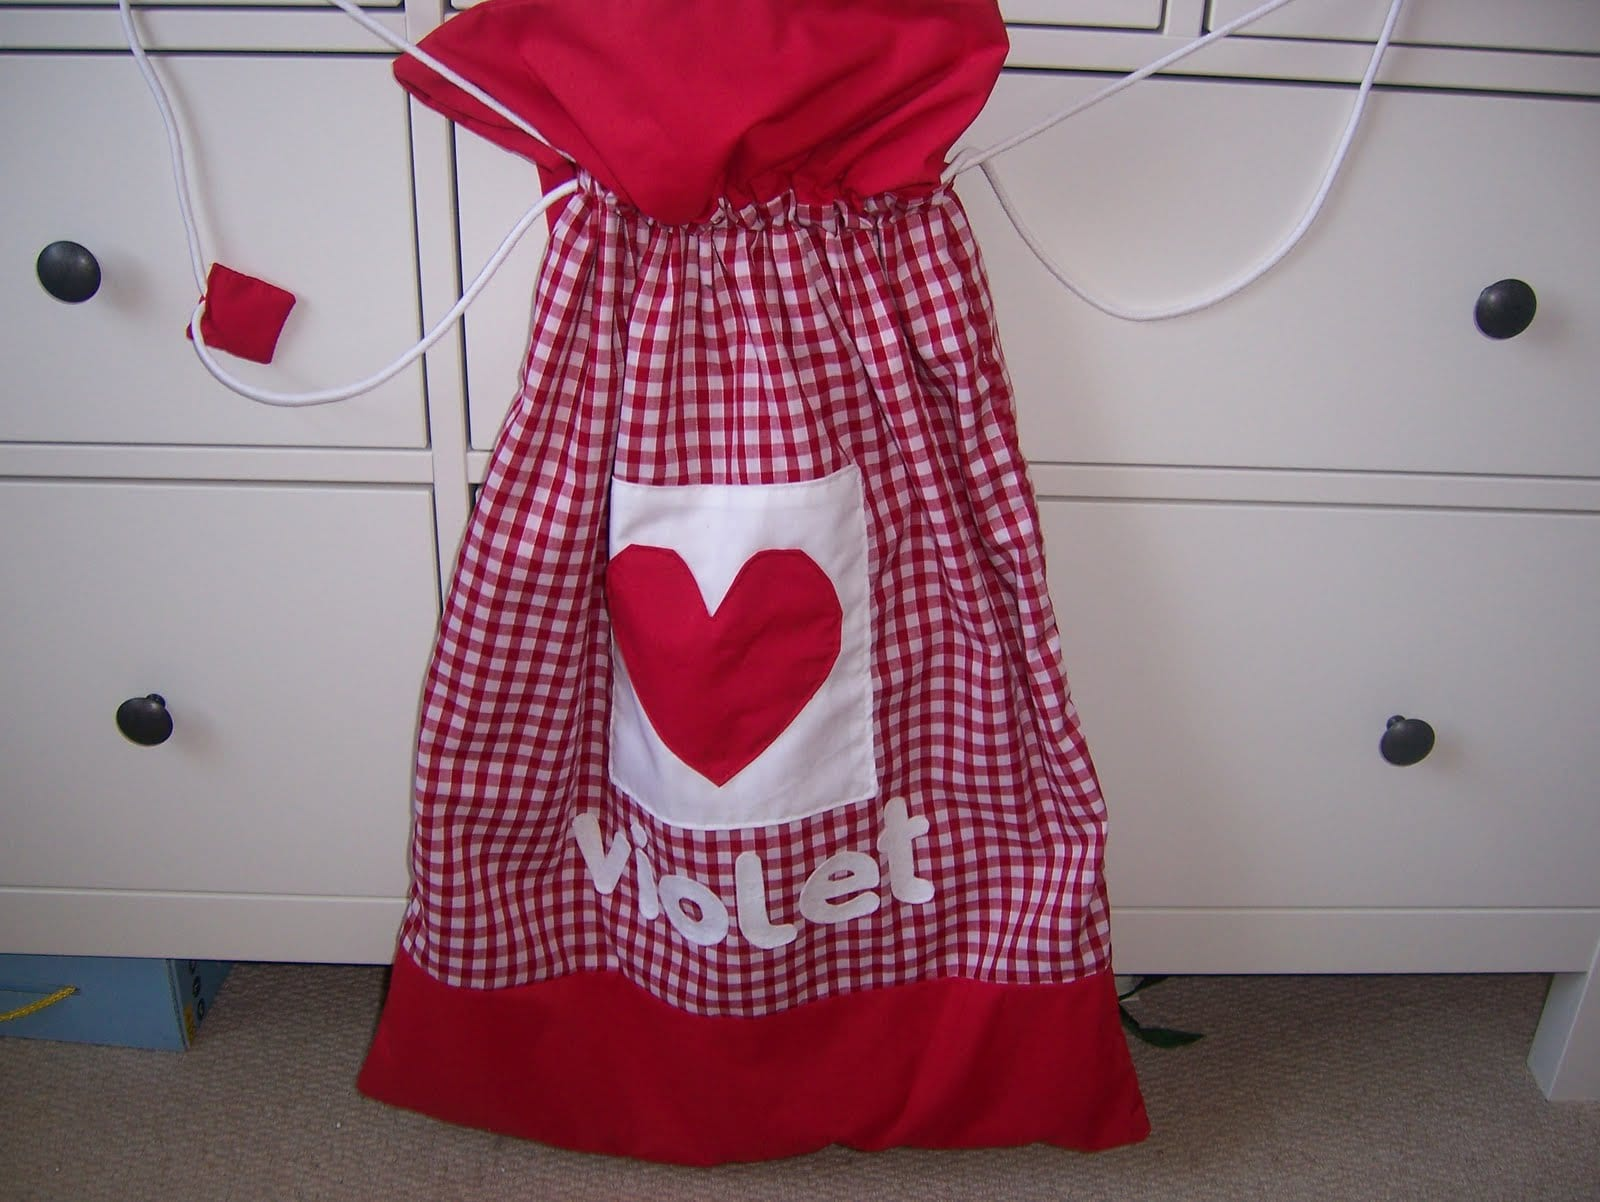 Personalised Toy Sack – Product Review